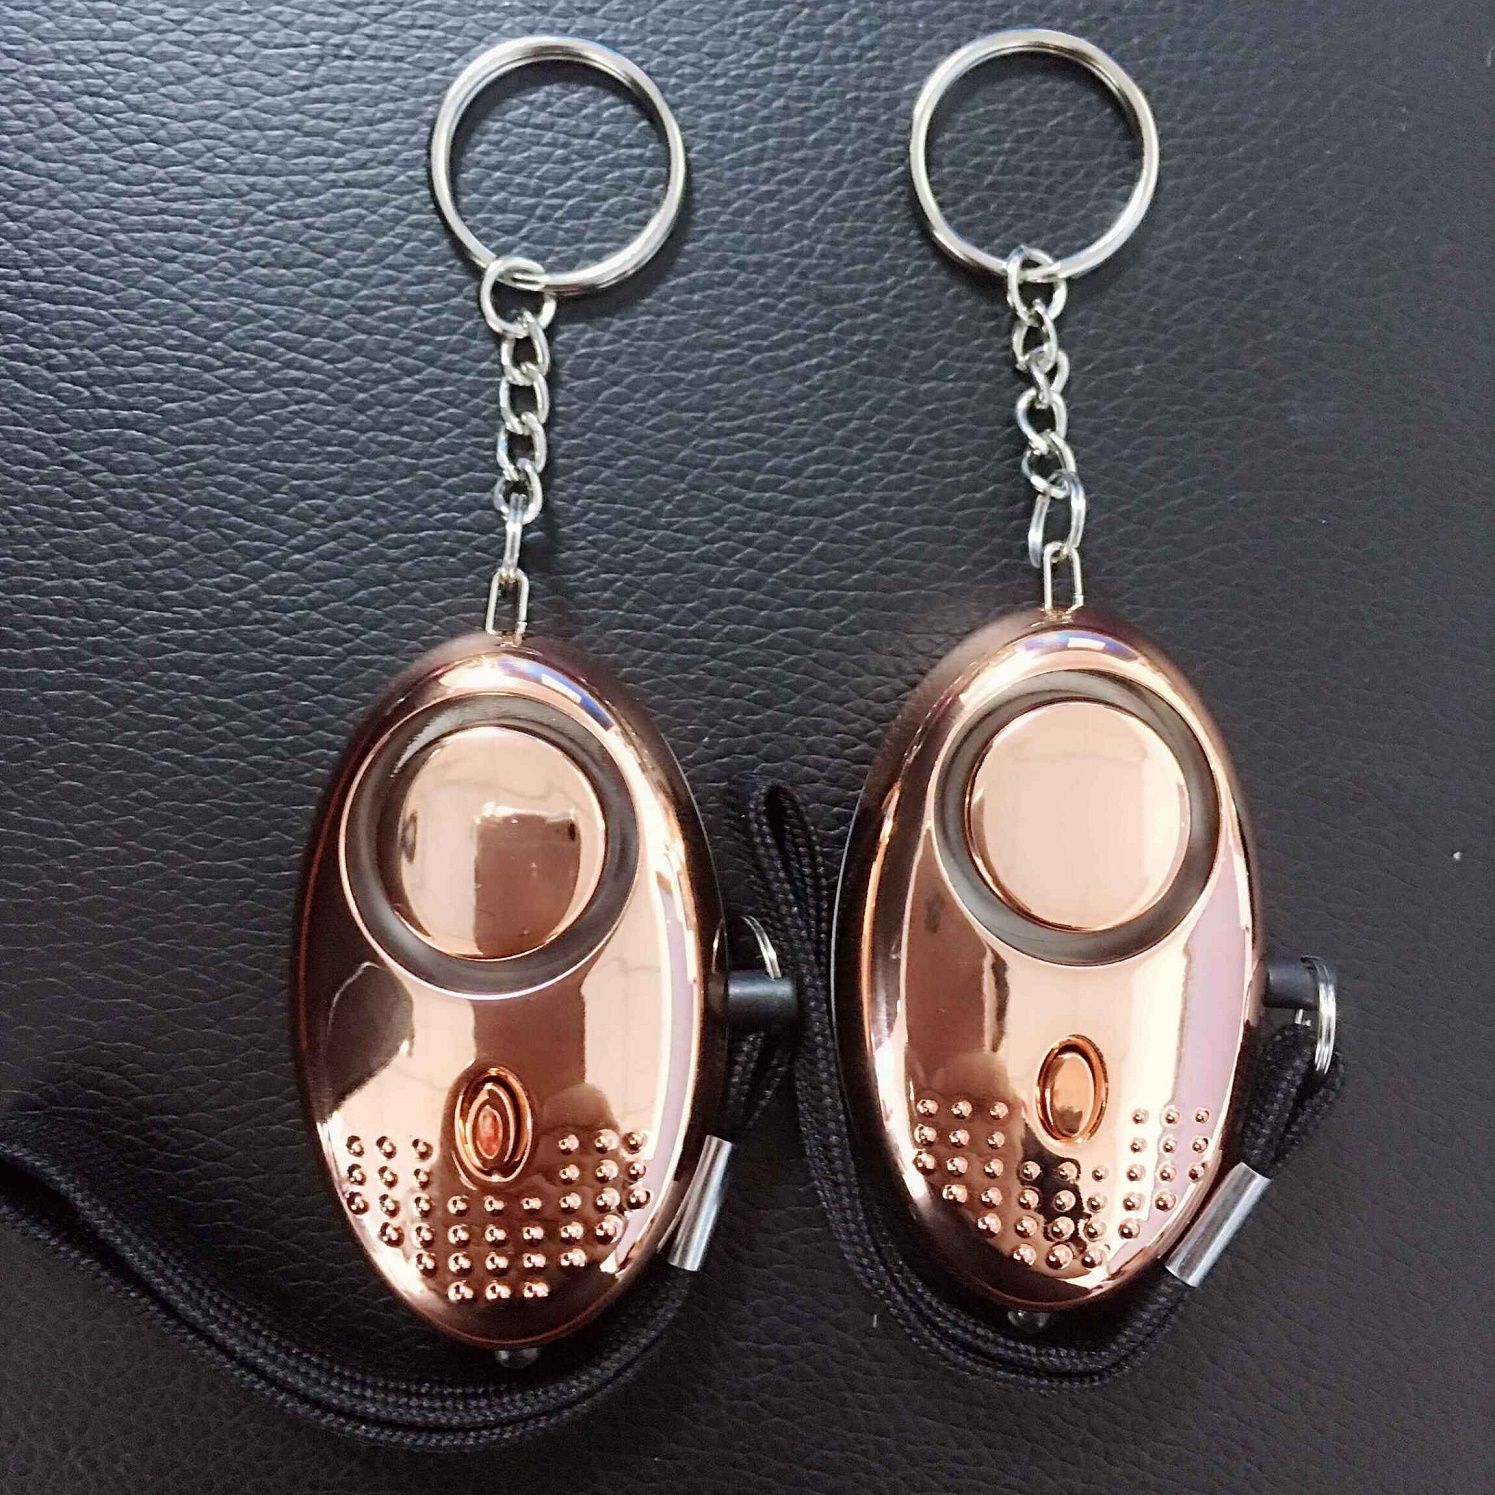 High Level Sound 140DB Personal Alarm With Key Ring LED